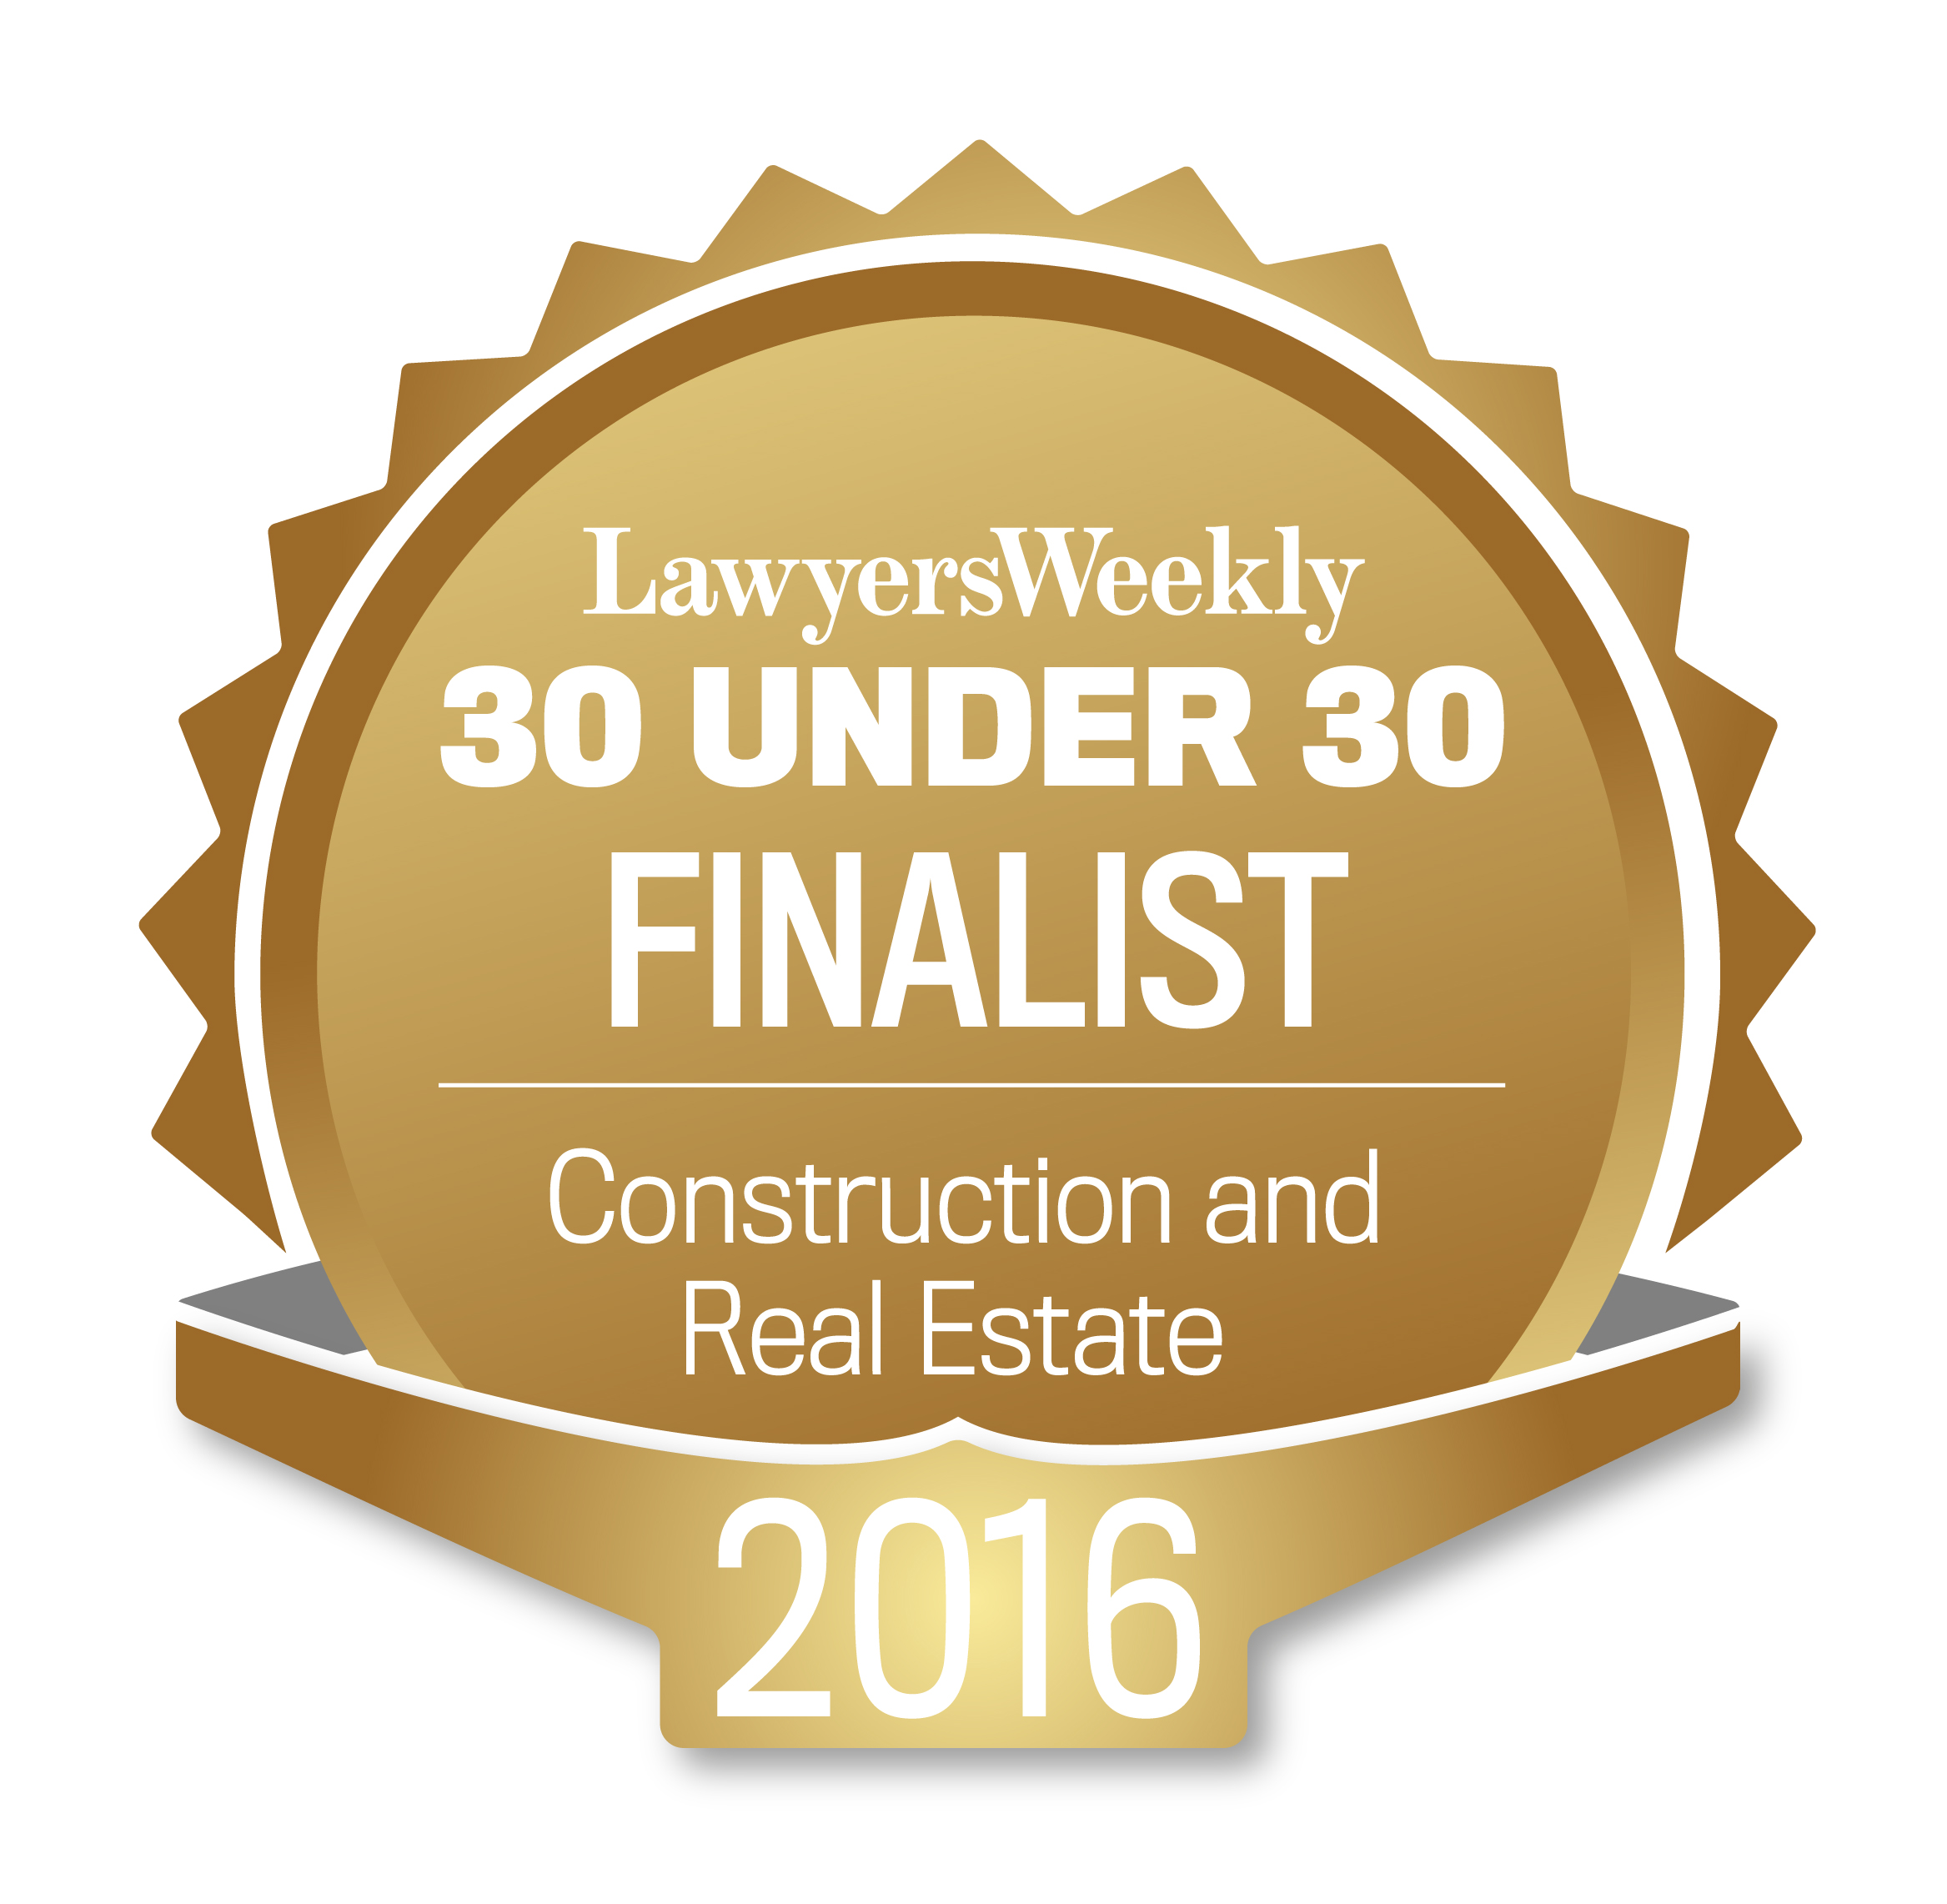 30-under-30-seals_construction_and_real_estate_finalist-002